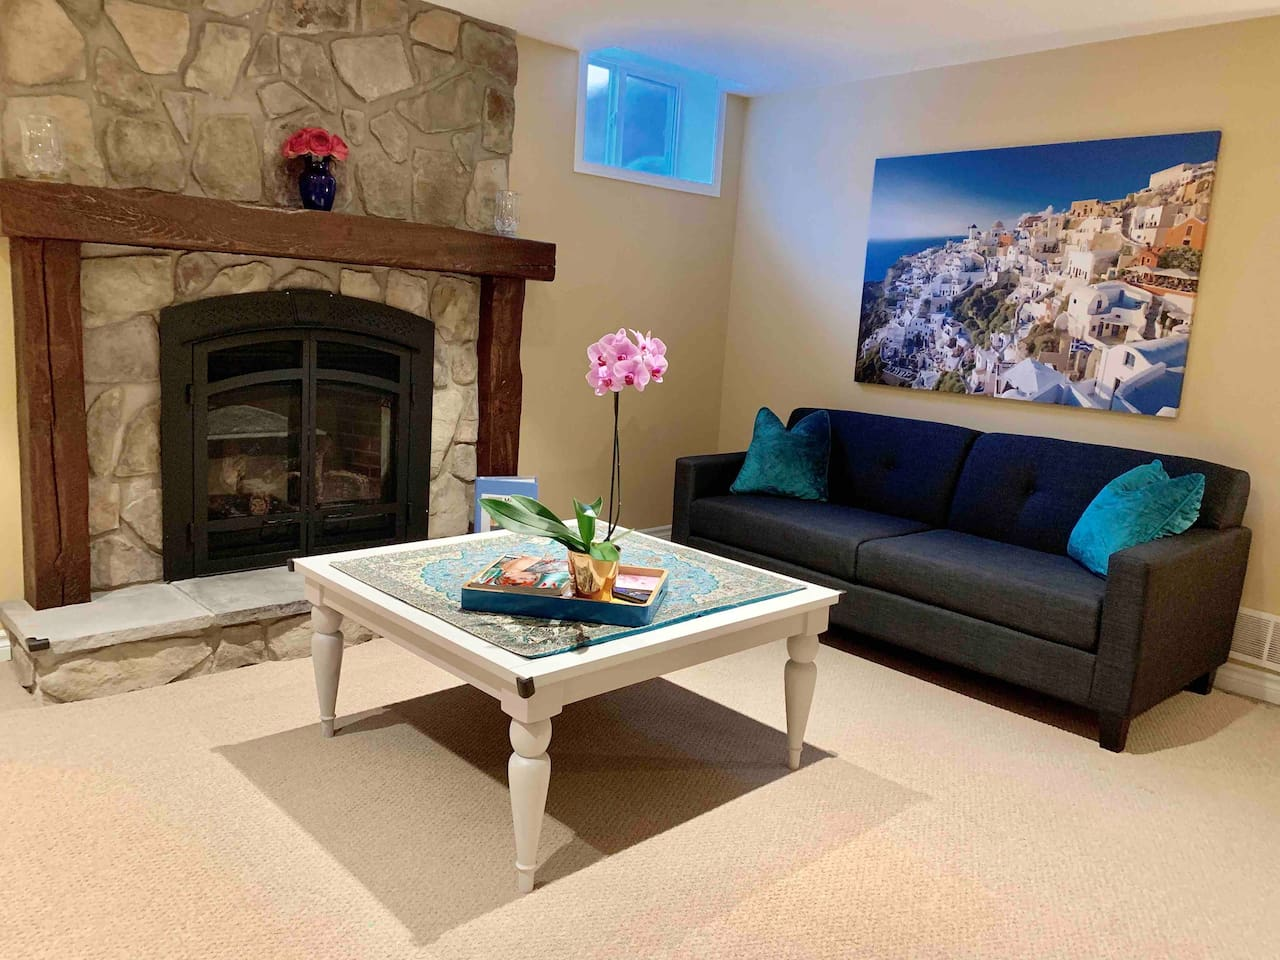 Enjoy this beautiful, Airy living room with the gas fireplace